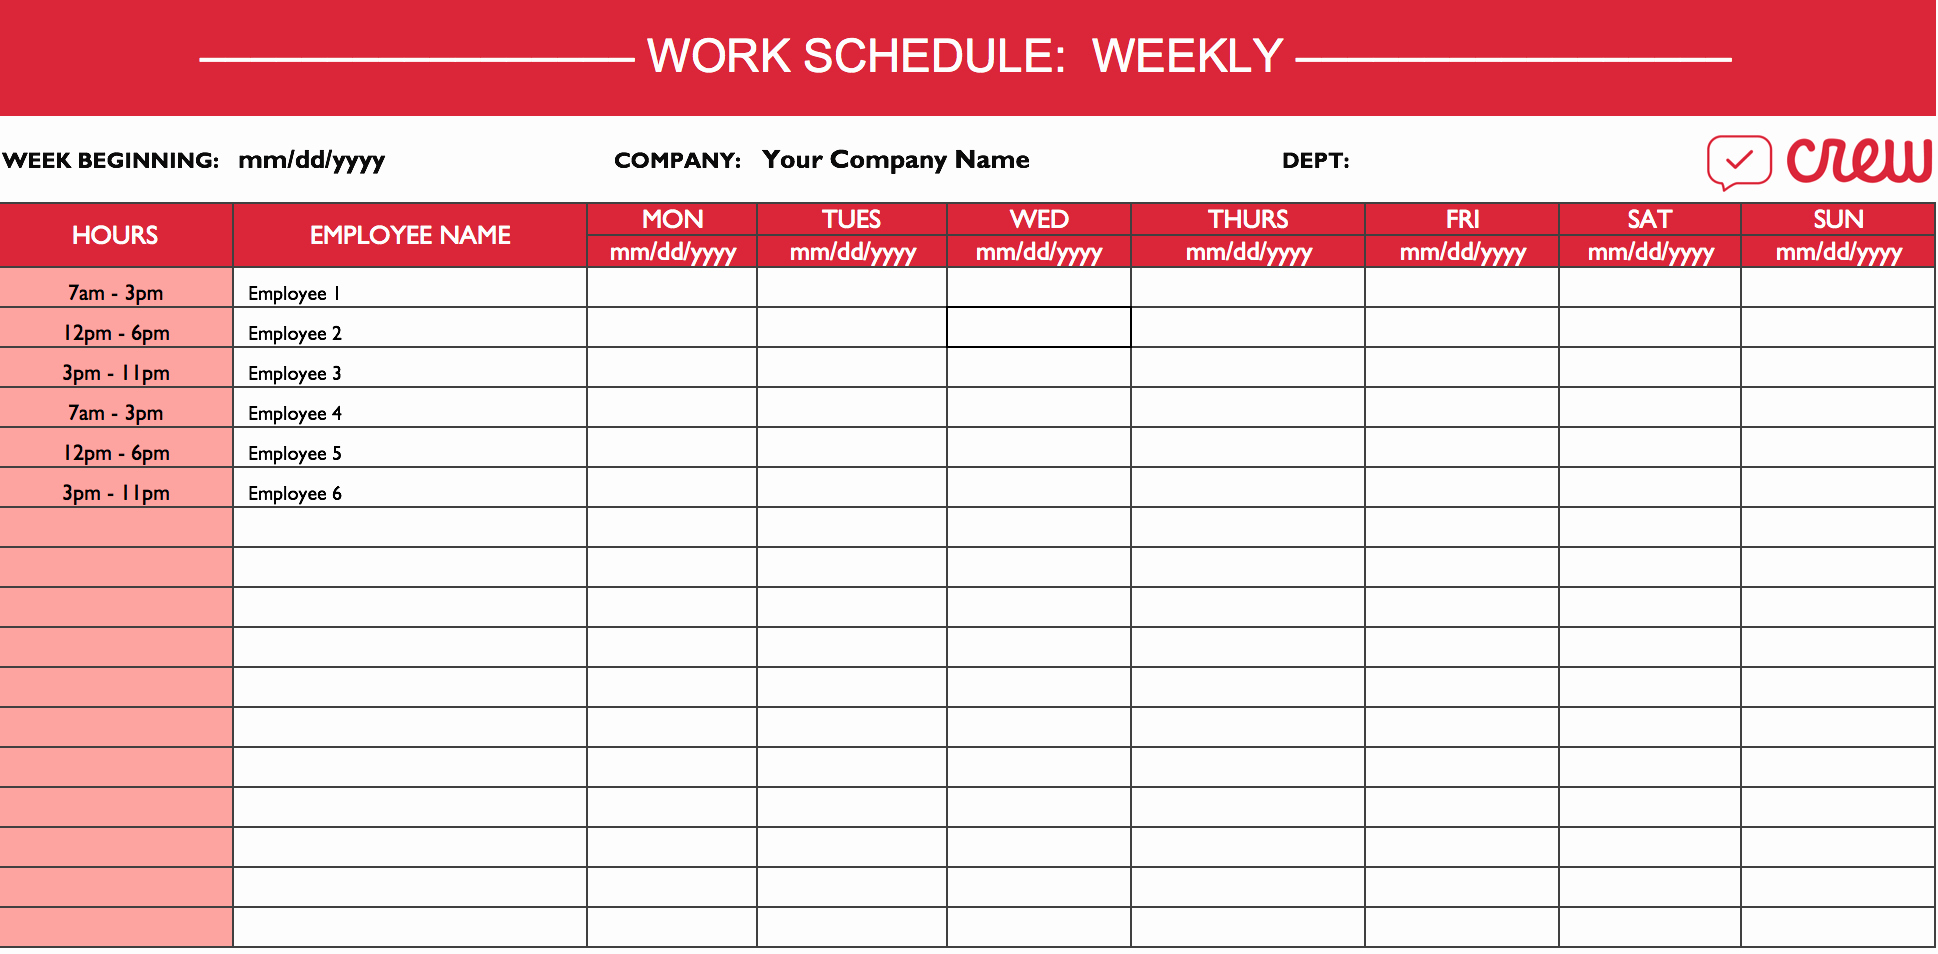 Free Weekly Work Schedule Template New Weekly Work Schedule Template I Crew